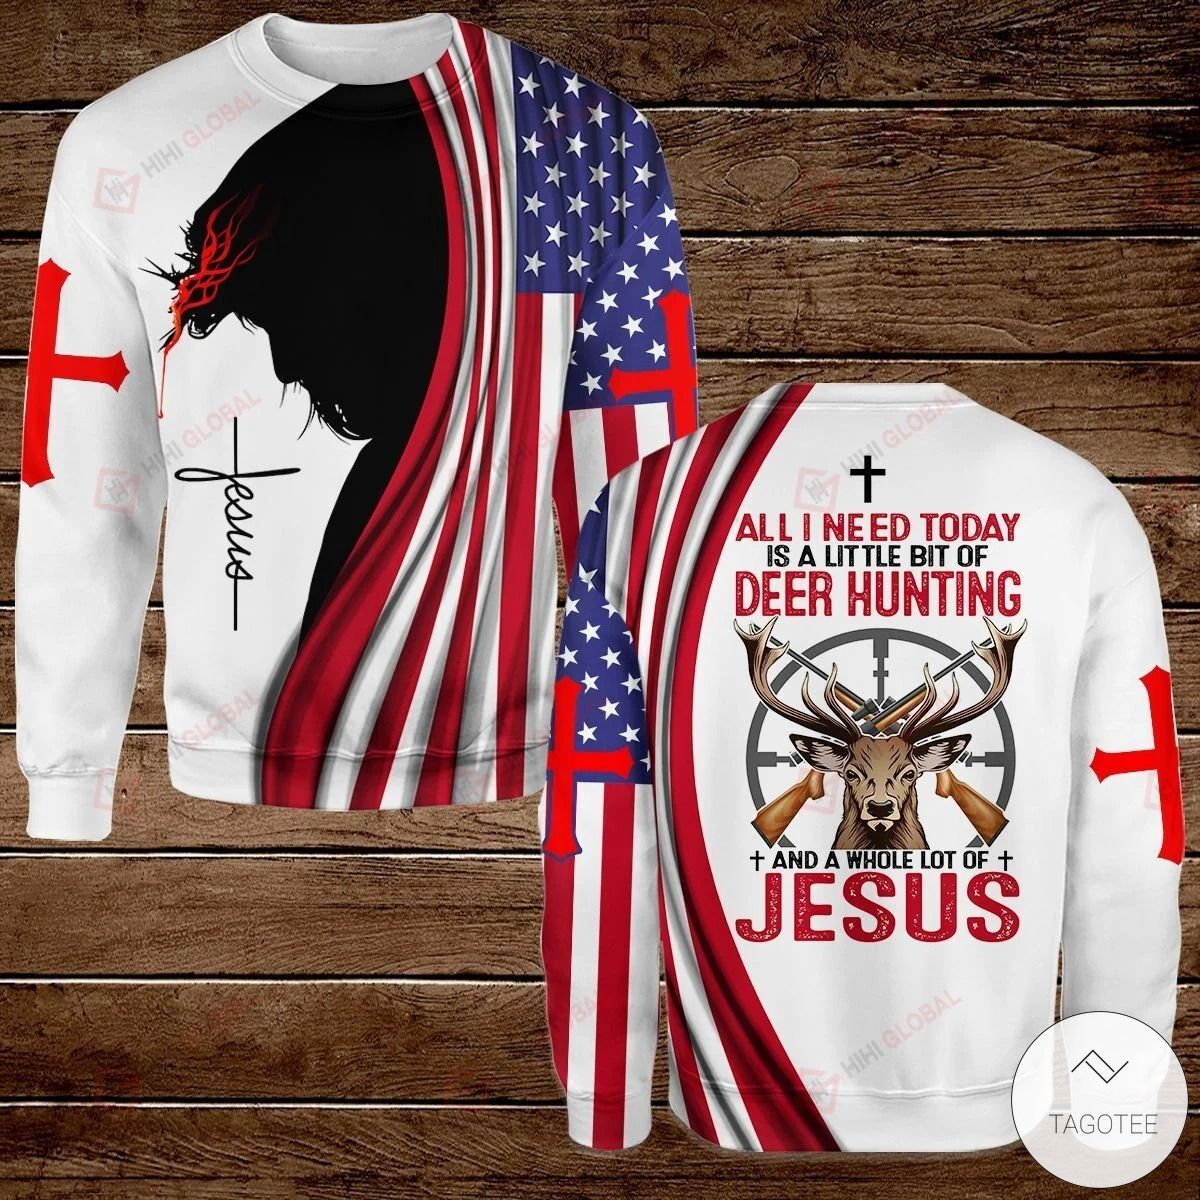 All I Need Today is A Little Bit of hunting and A Whole Lot of Jesus Hawaiian shirt, hoodies and sweatshirt3